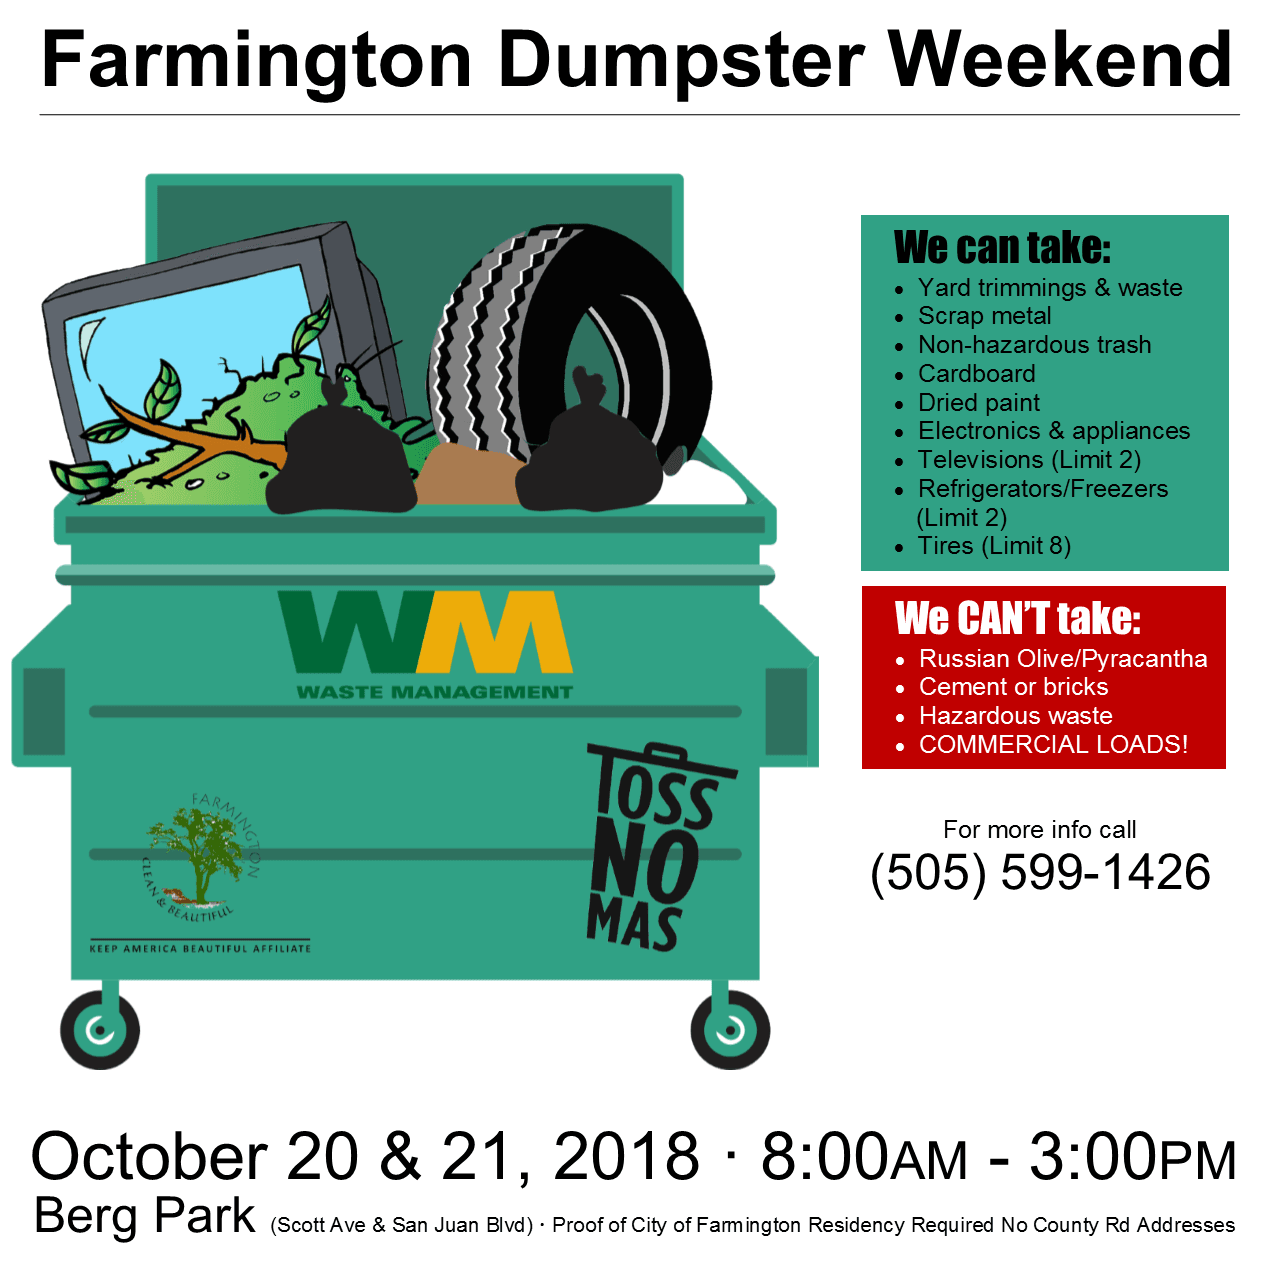 fall-dumpster-weekend-2018-fb